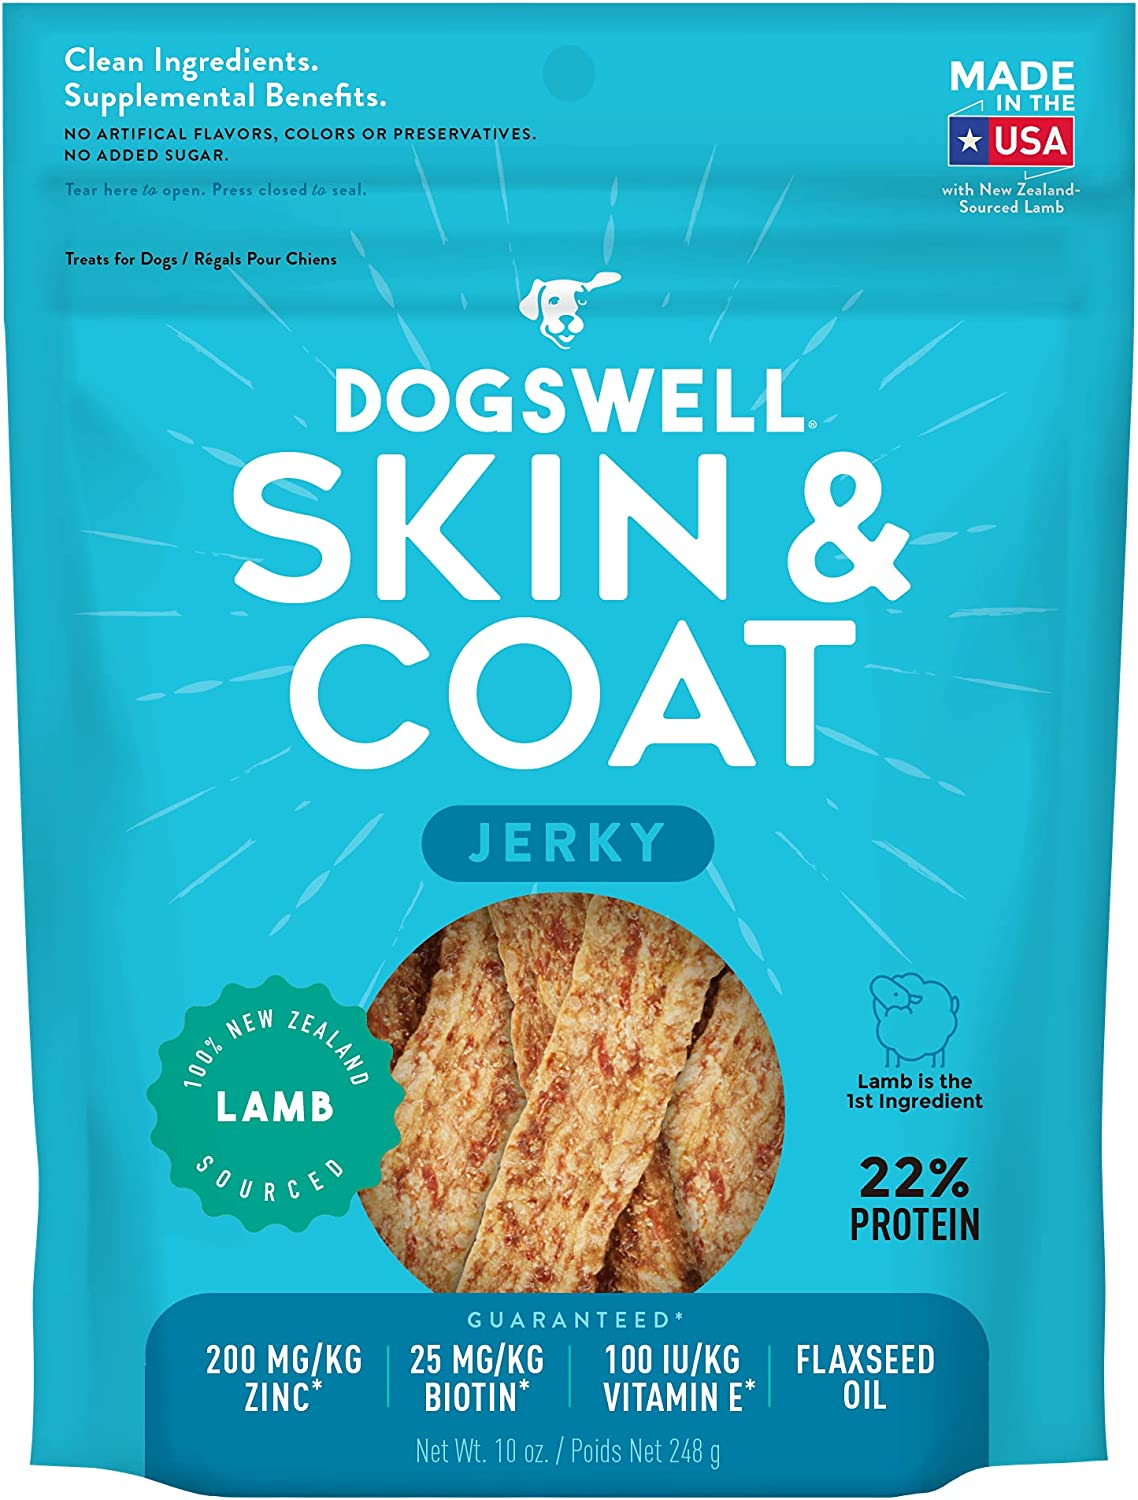 Dogswell 100% Meat Jerky Dog Treats in Seasonal Wrap Introduction Bioti Made At the price of surprise USA with